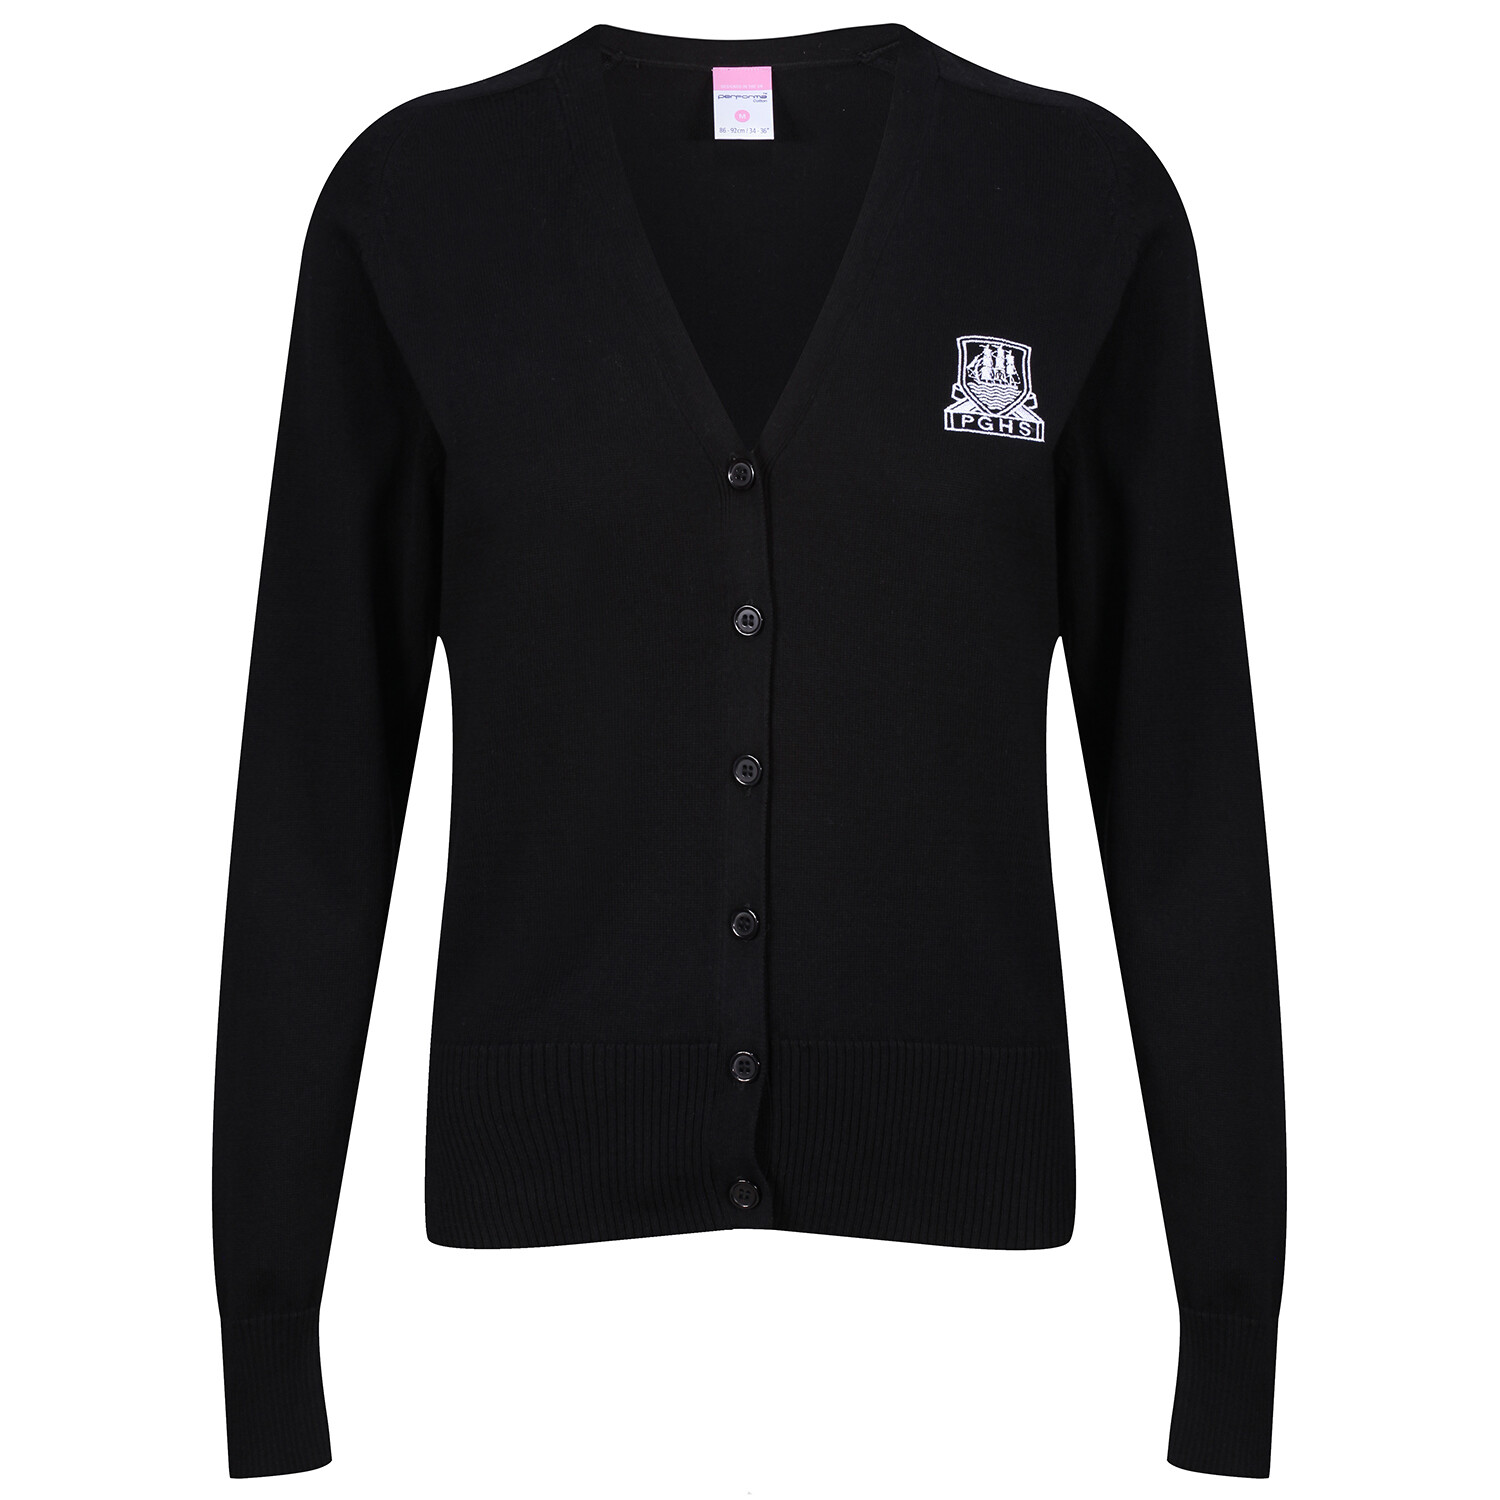 Port Glasgow High Girls Knitted Cardigan